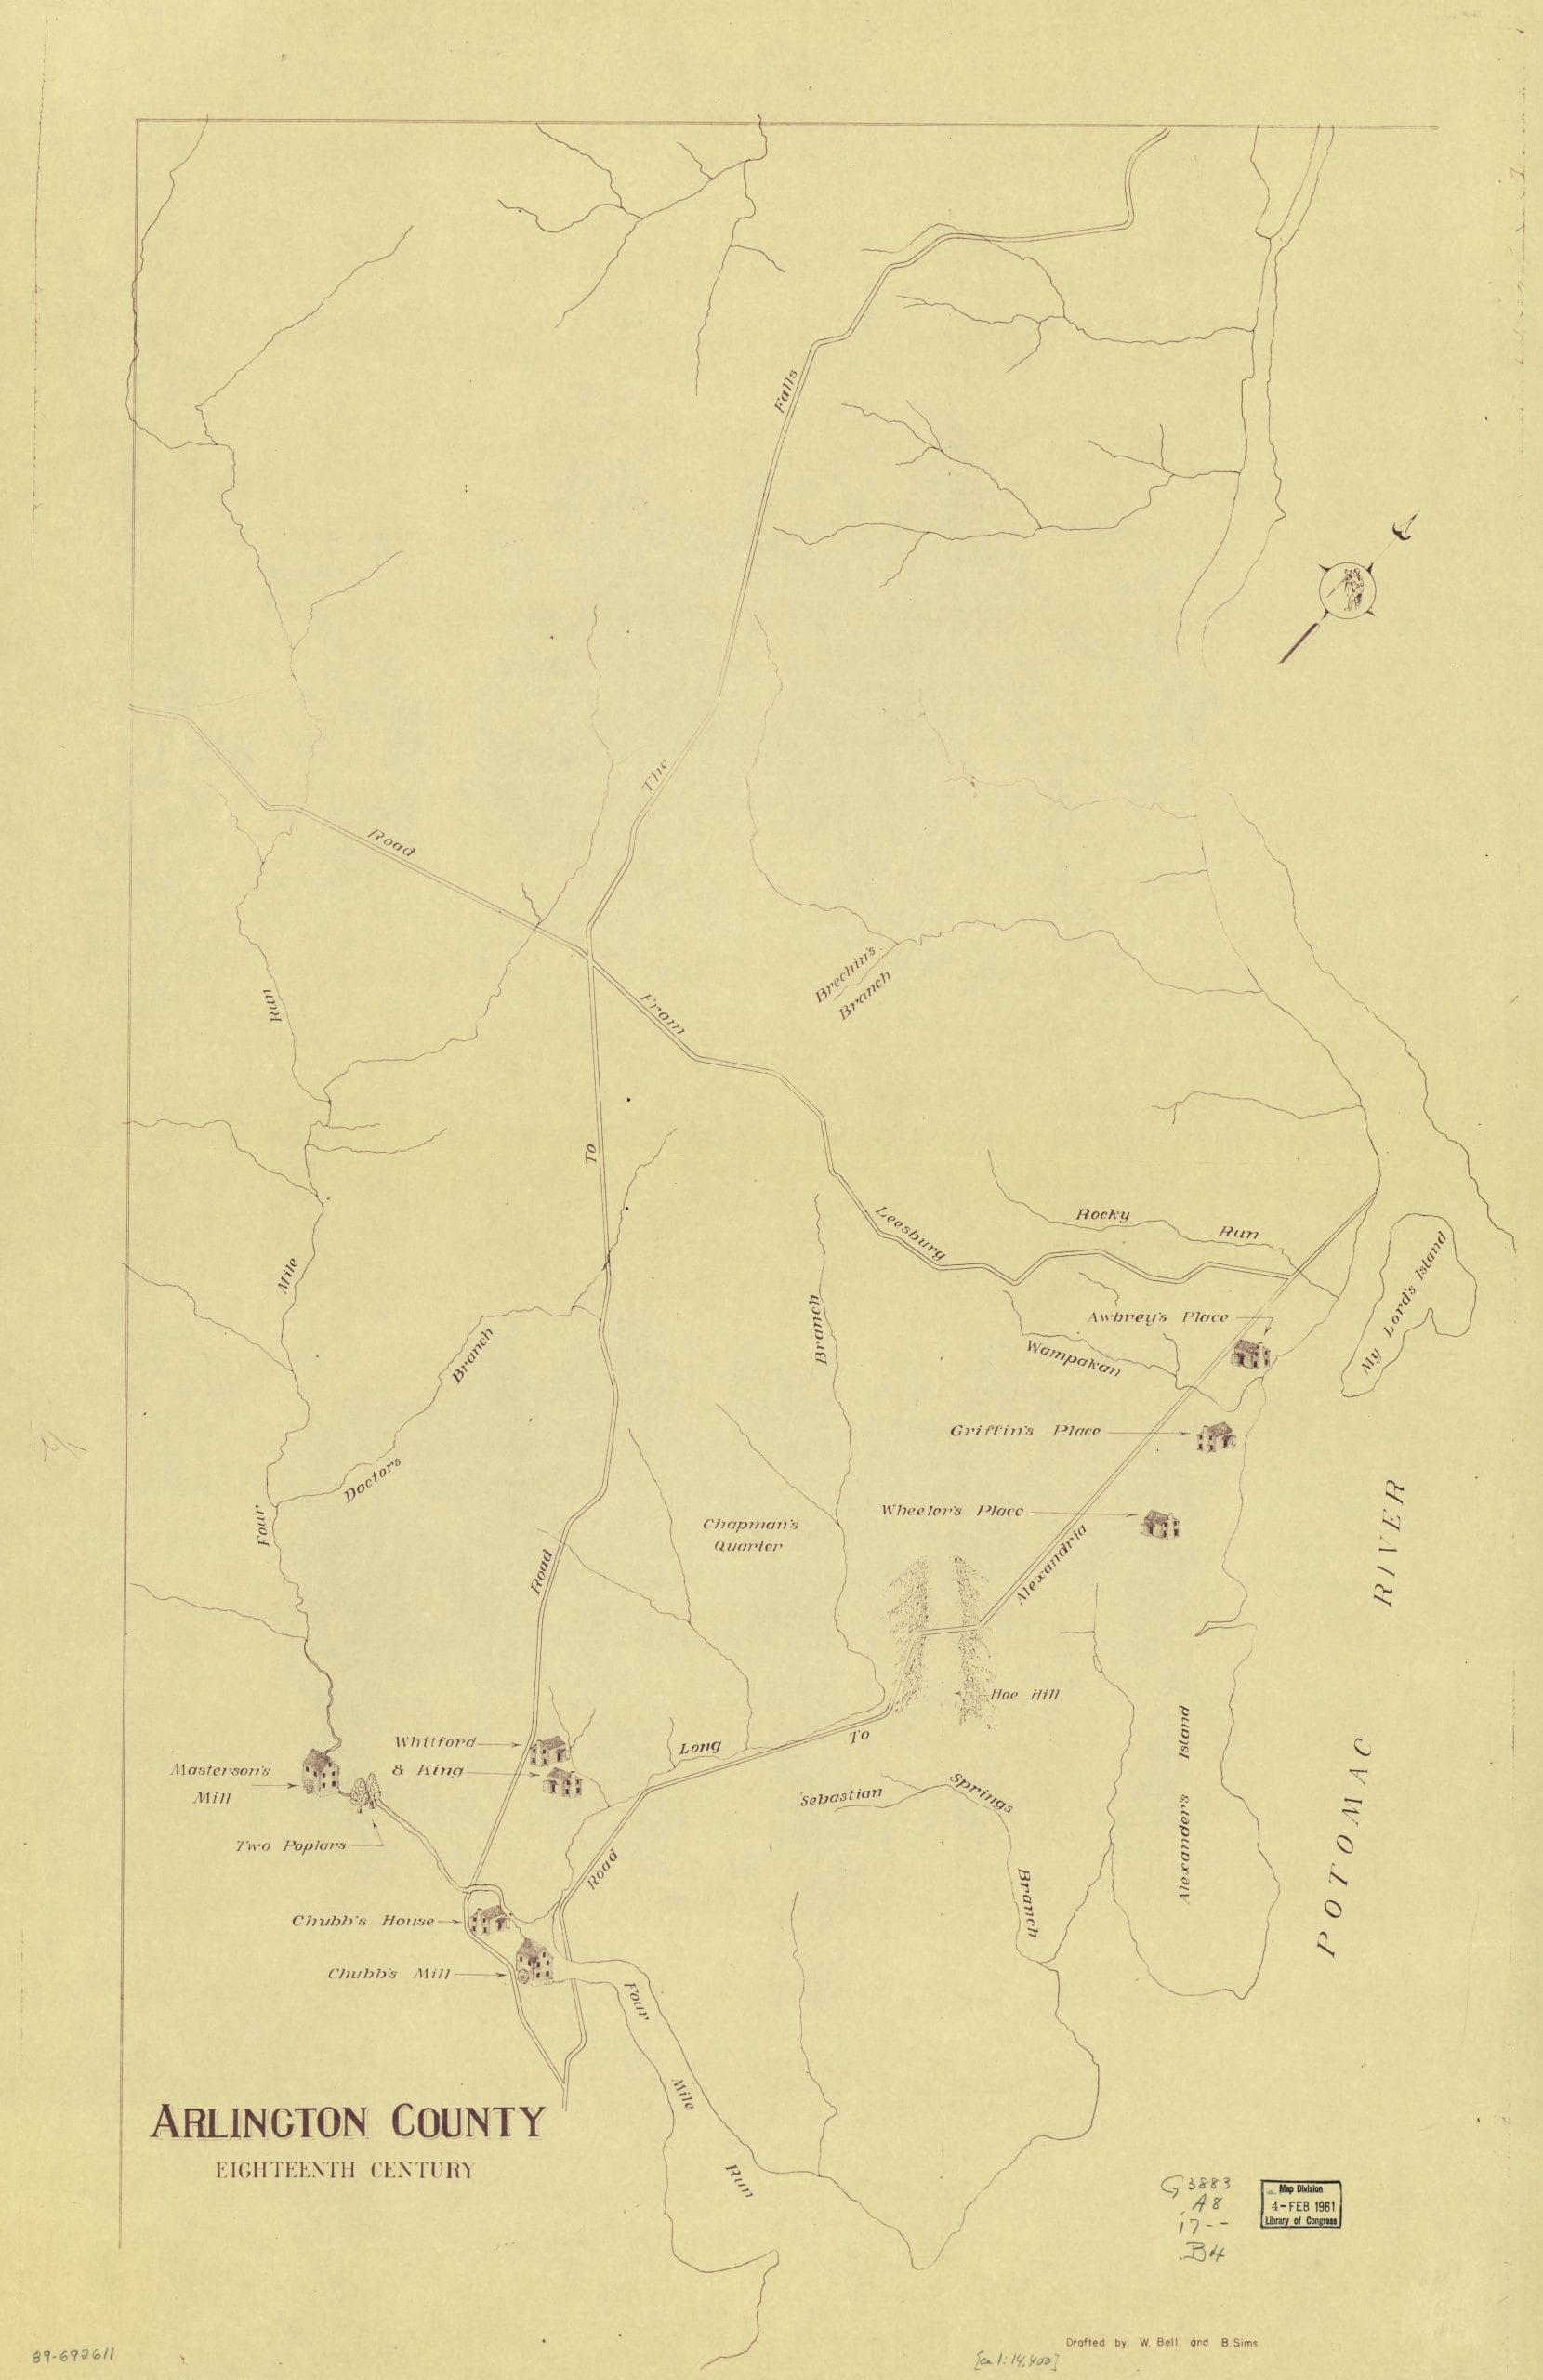 Arlington County in the 1700s